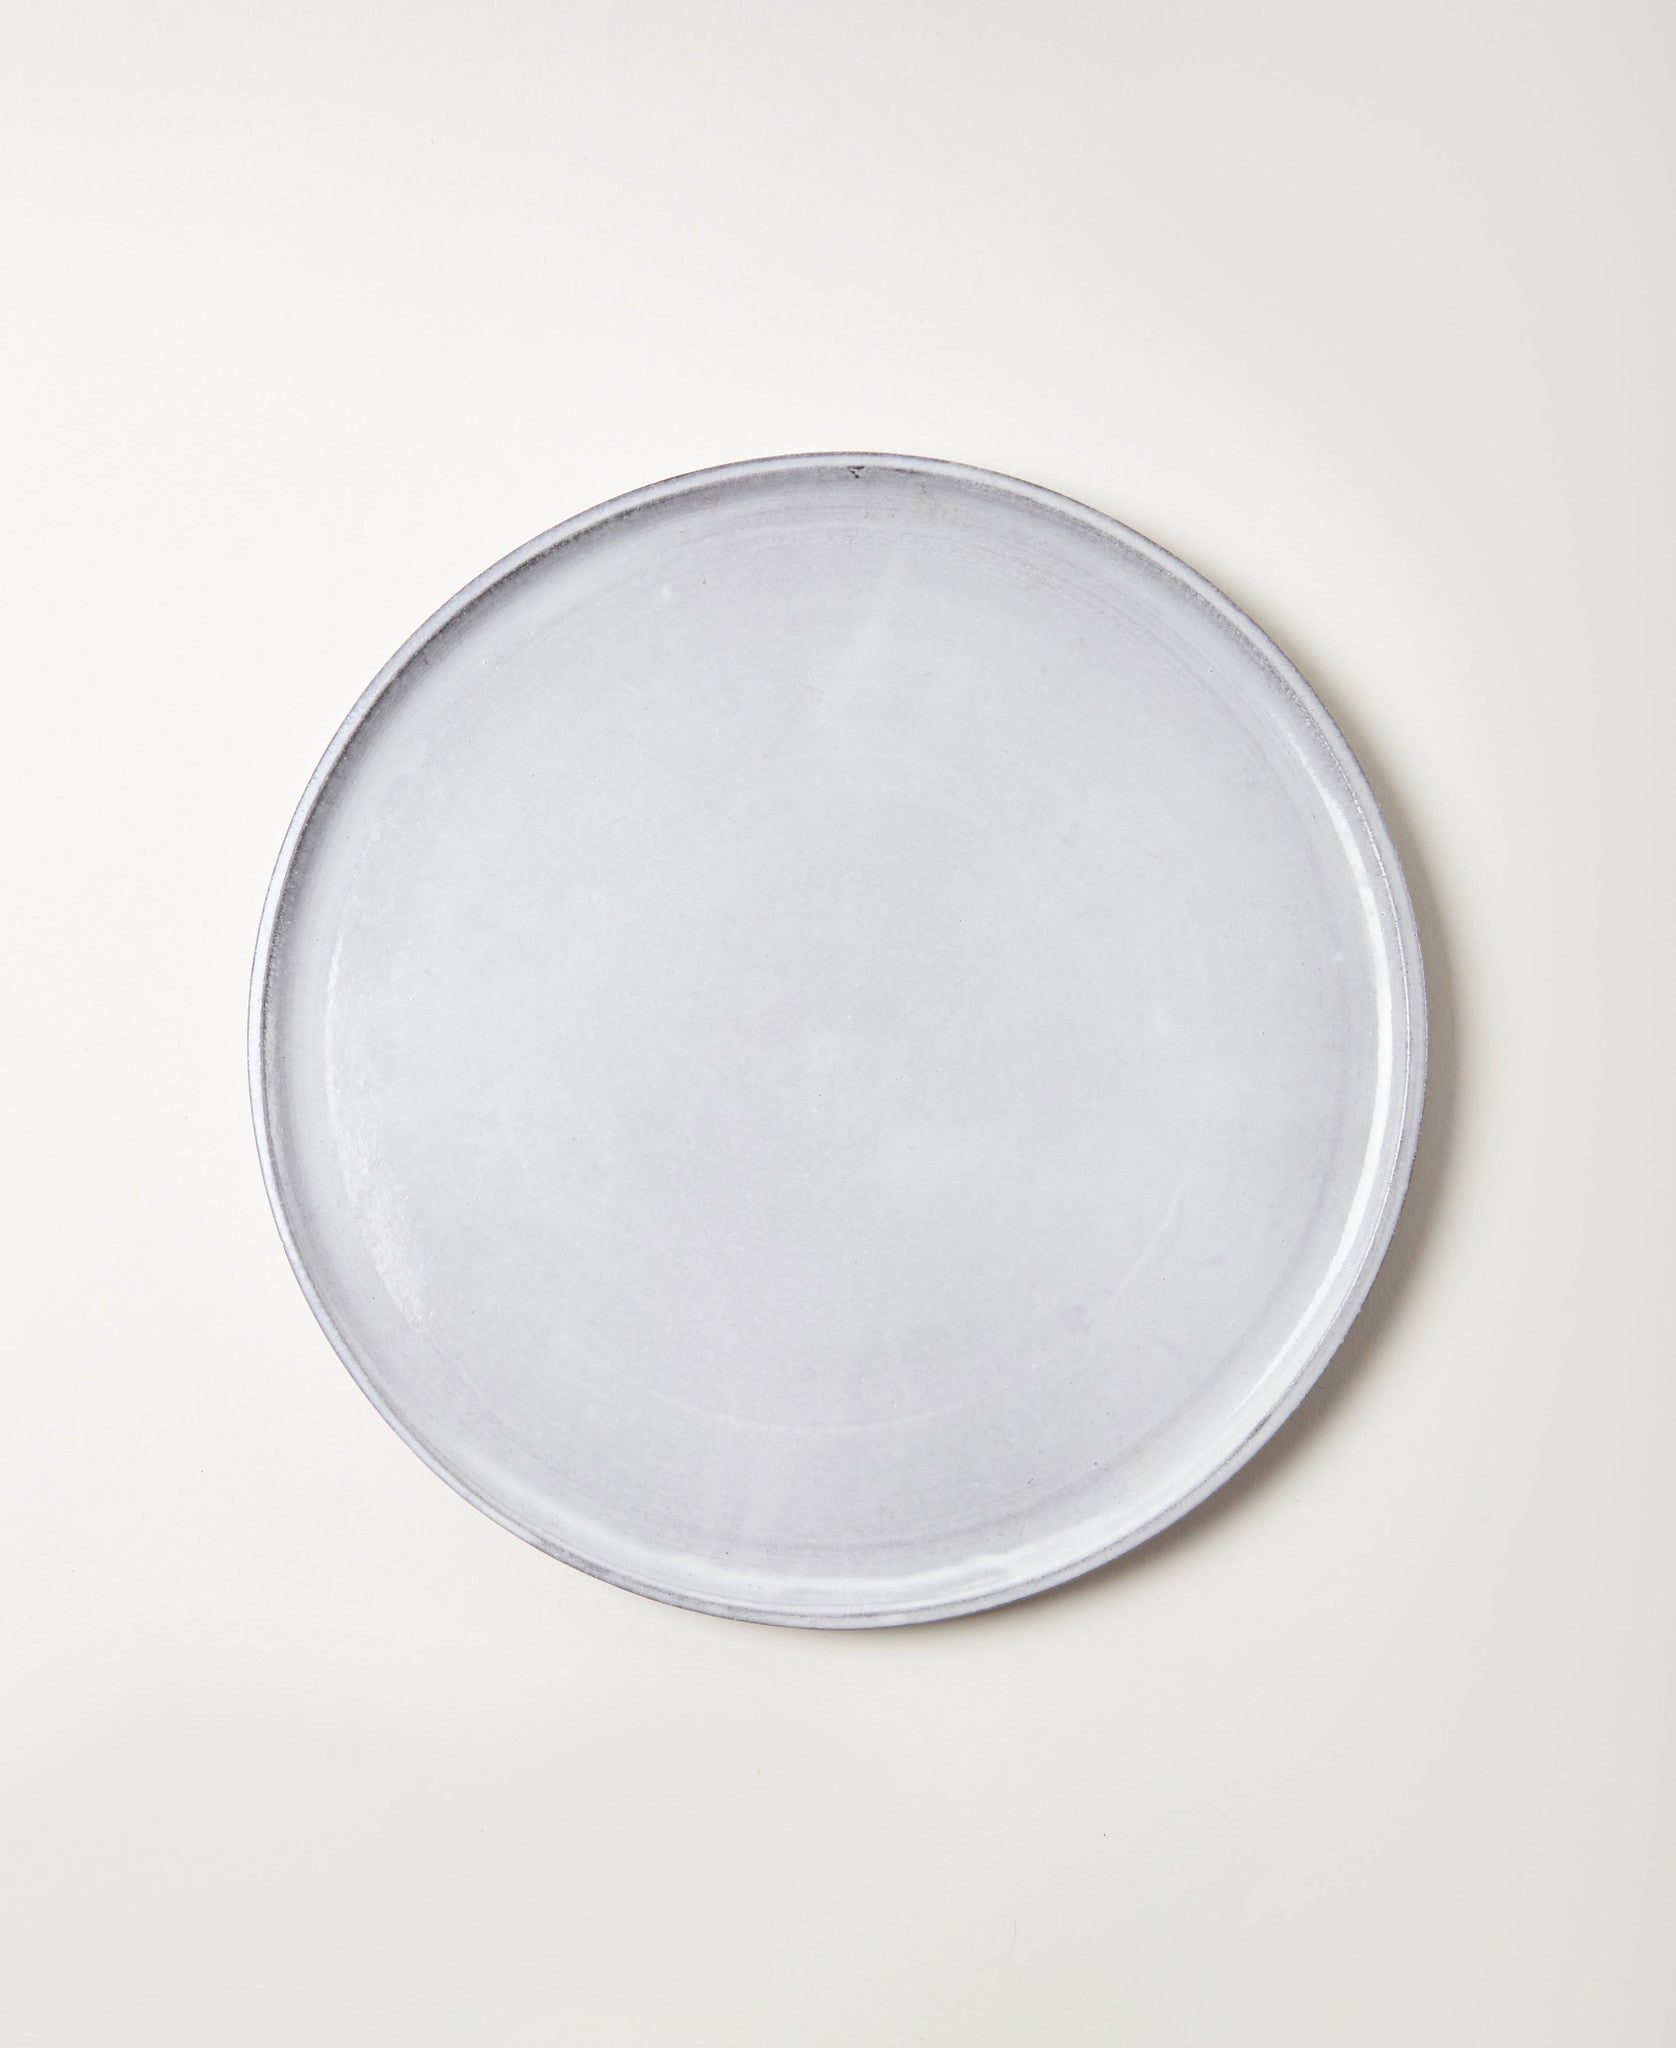 Flat Dinner Plate - Il Buco Vita : dinner plate images - pezcame.com